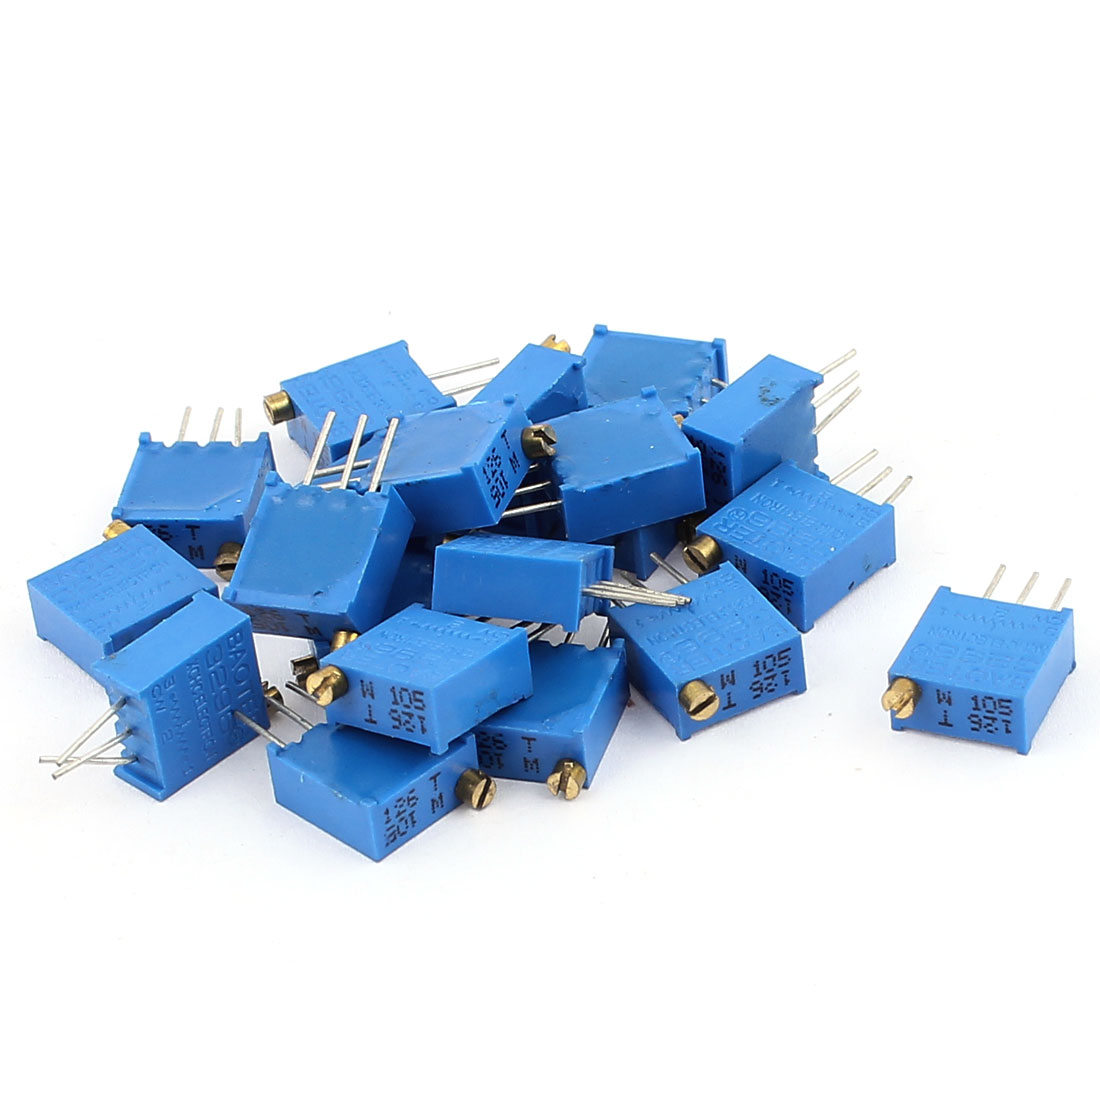 20 Pcs 3296W 1M ohm Multiturn Potentiometer Pot Variable Resistor